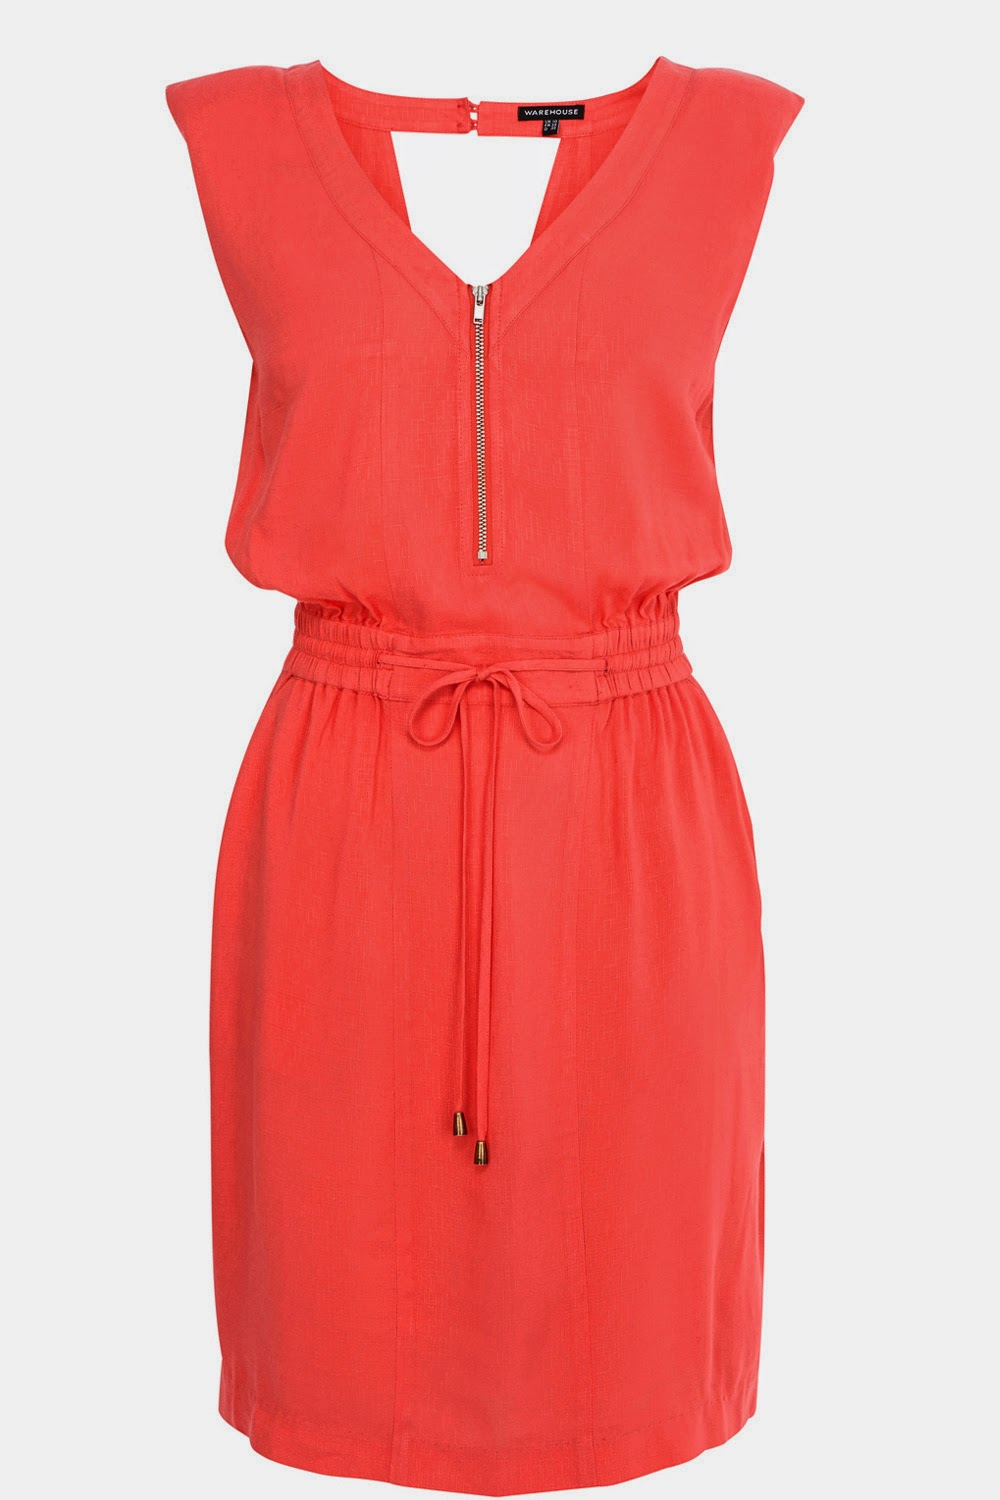 warehouse coral dress